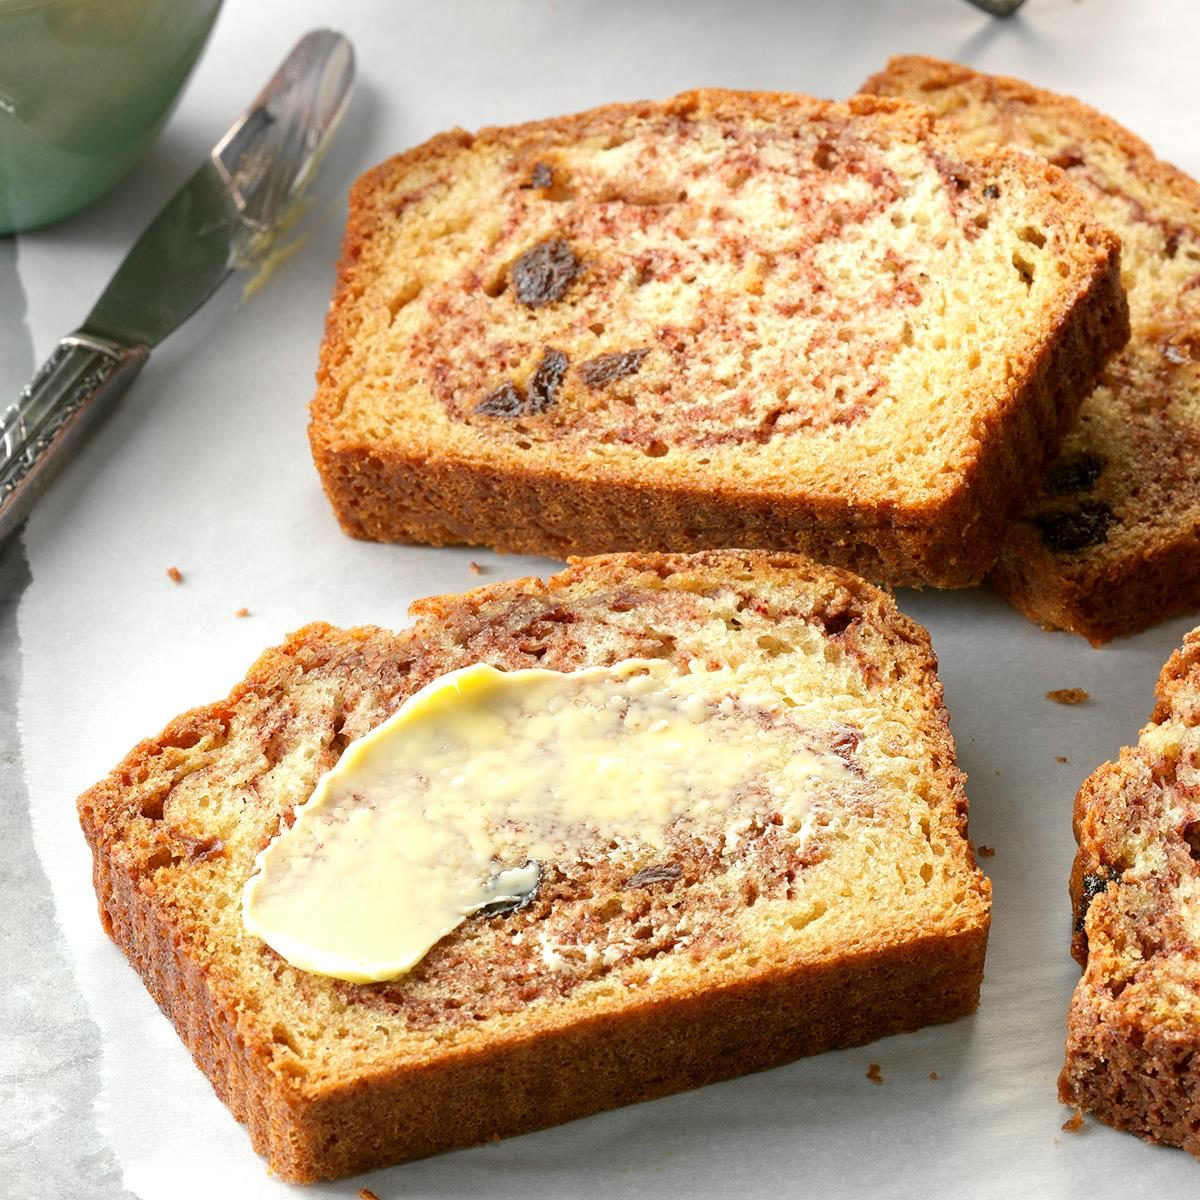 Capricorn: Cinnamon Raisin Quick Bread